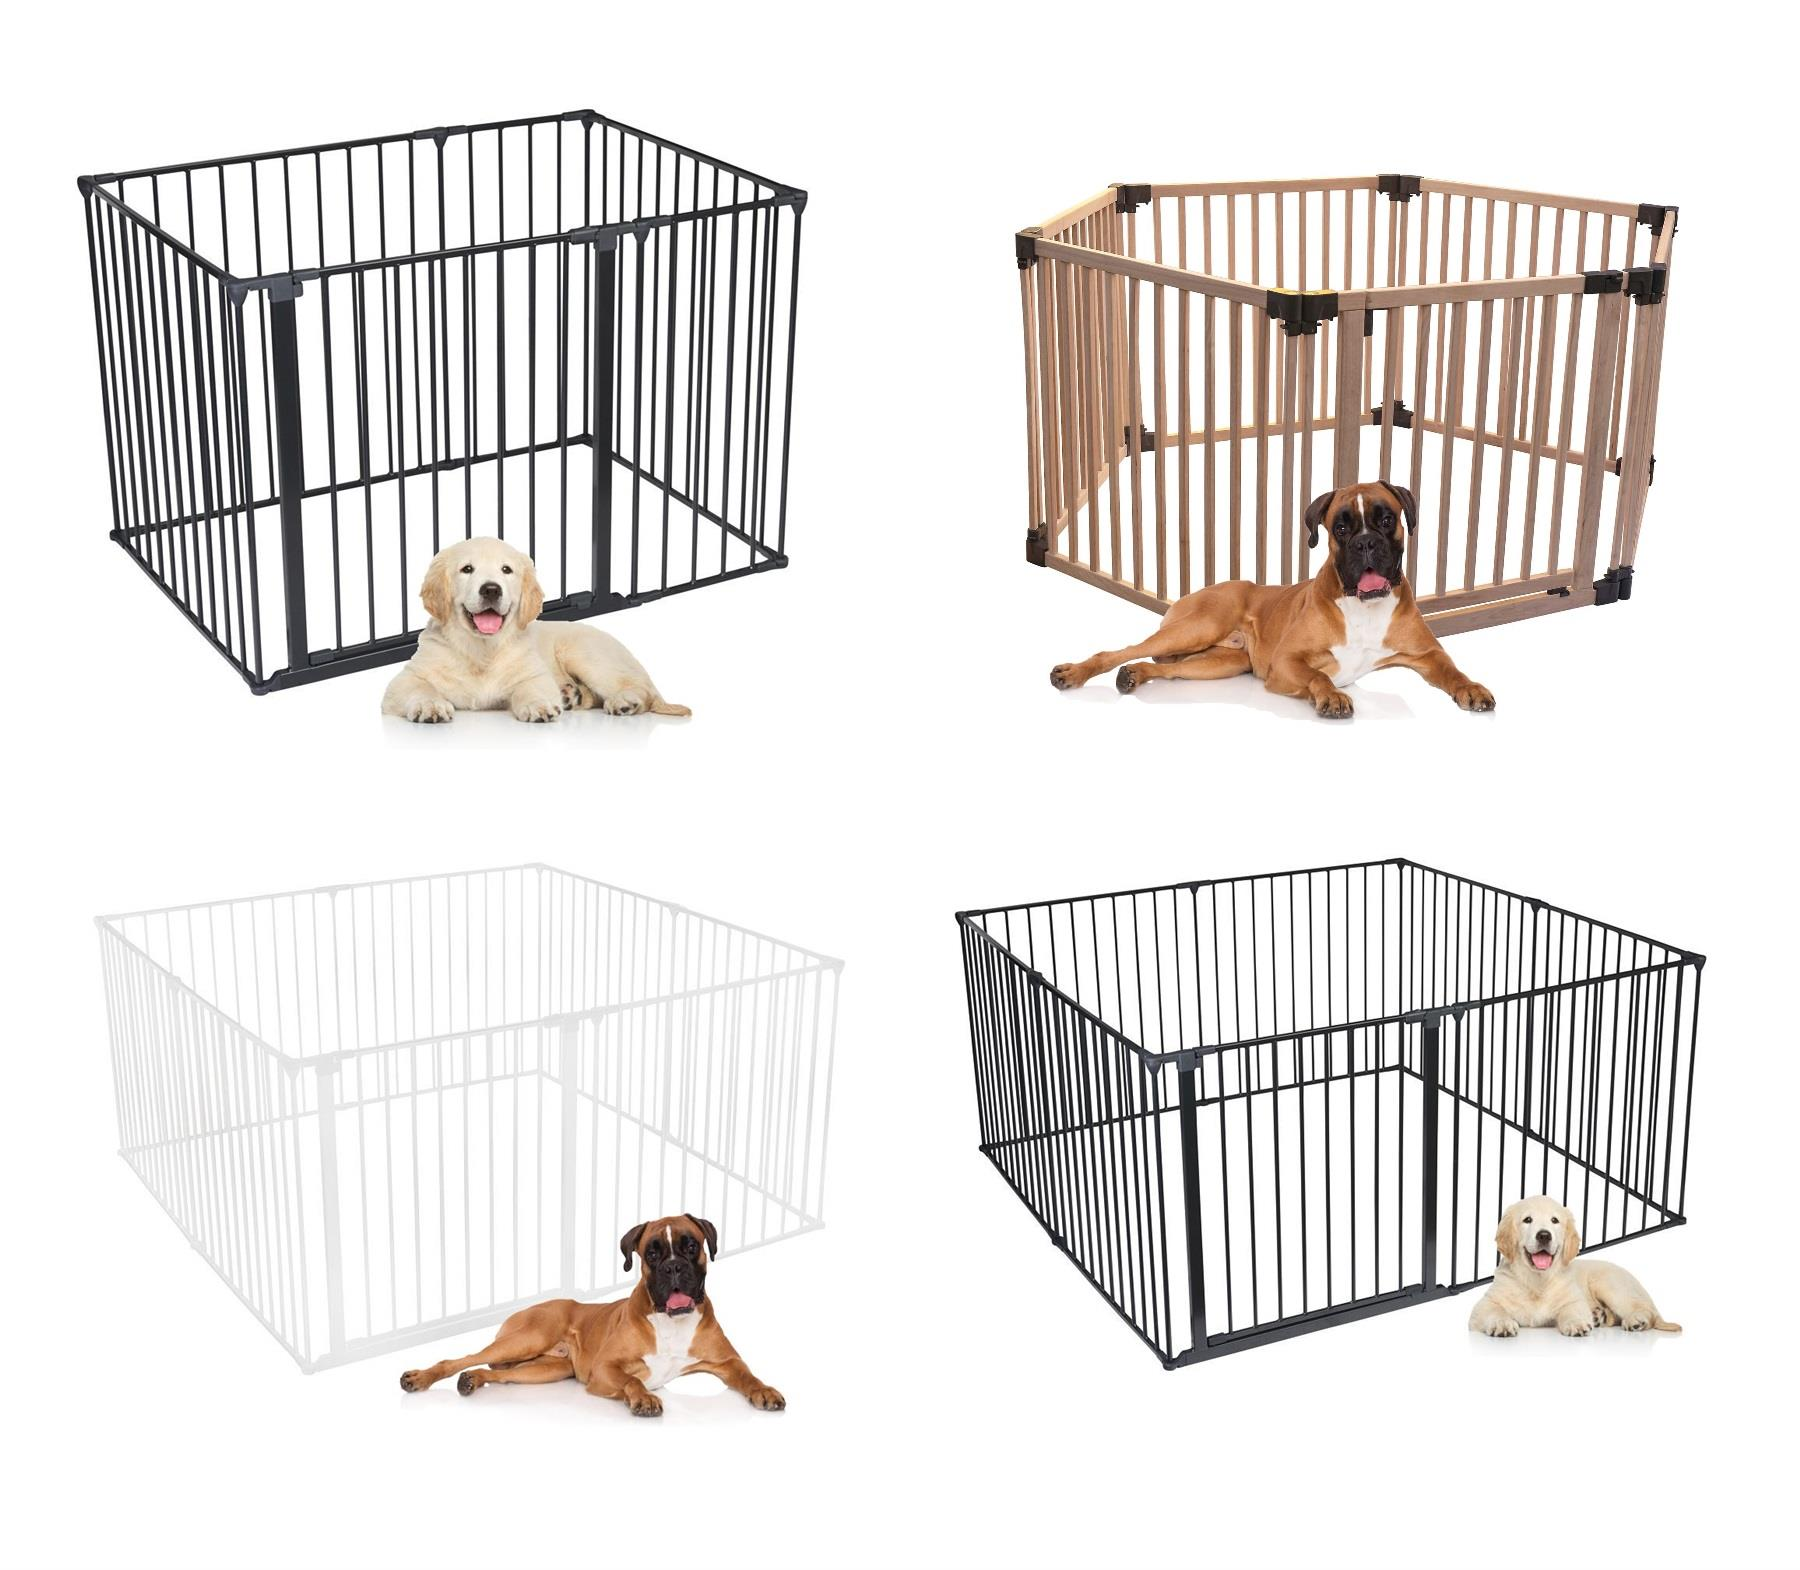 Details about Bettacare Premium Puppy Pen Indoor Deluxe Dog Pet Pens White  Black and Wooden